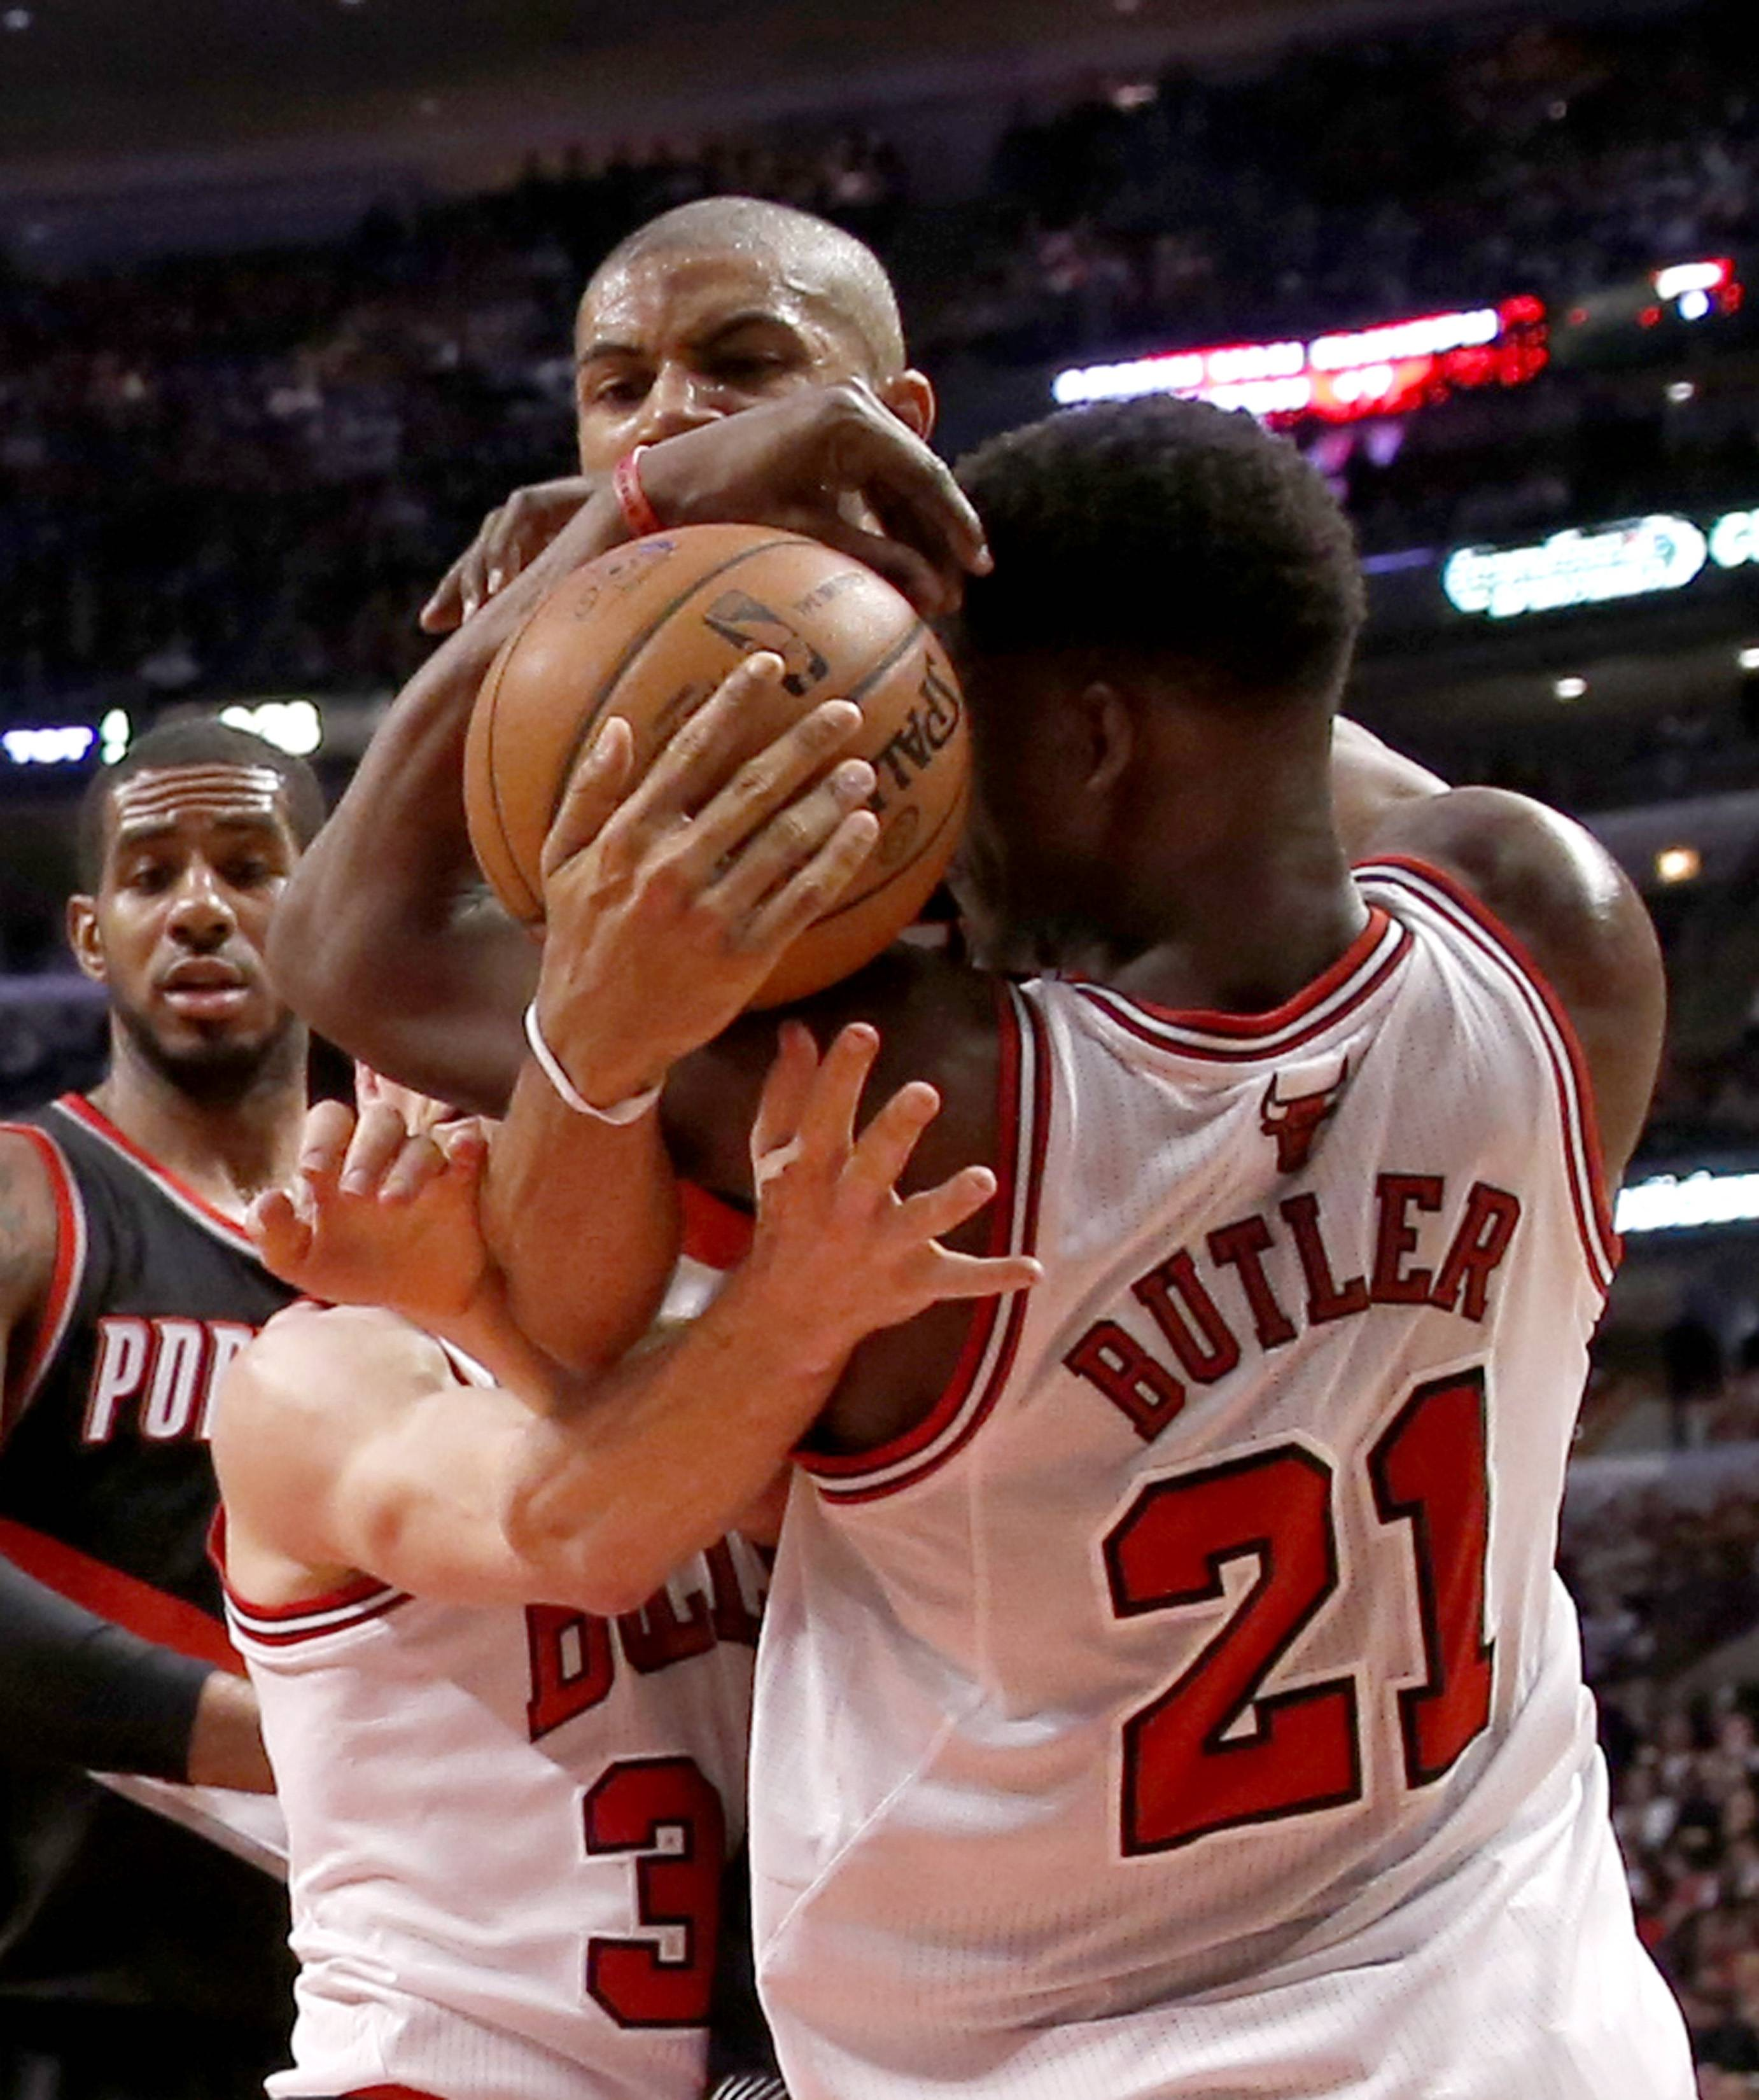 Portland's Nicolas Batum, top, battles Bulls forward Mike Dunleavy and Jimmy Butler for a rebound during the second half Friday night. The Trail Blazers won 91-74.